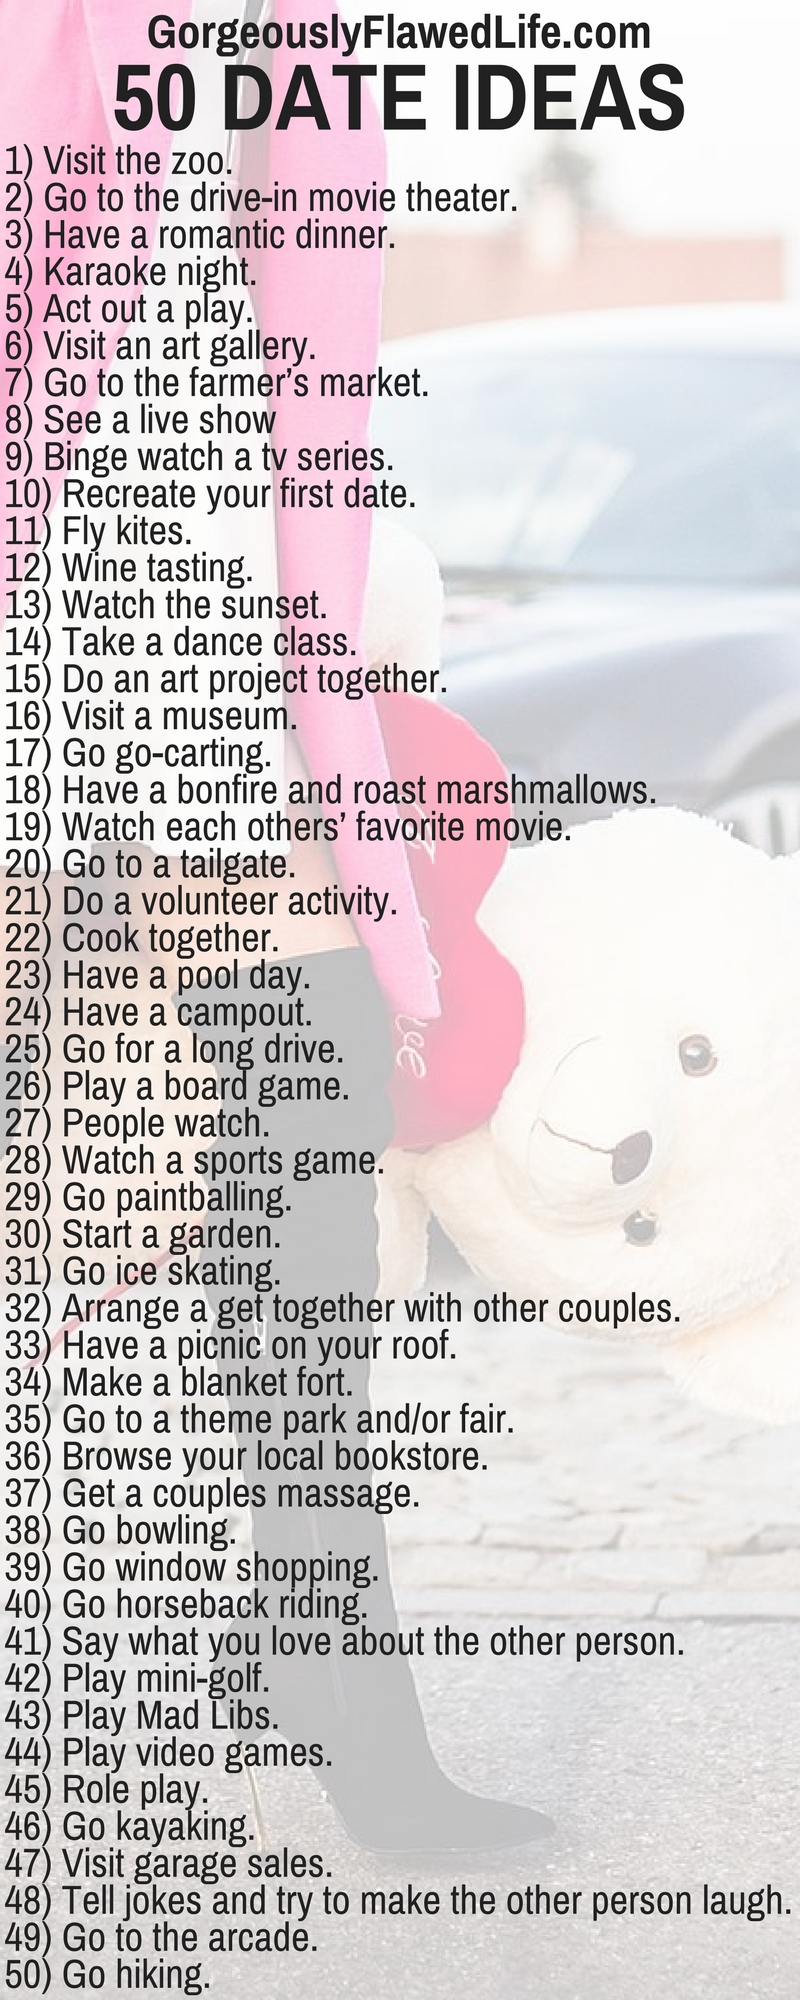 10 Famous Creative Date Ideas For Him 50 brilliant date ideas that will make your love life more exciting 14 2020